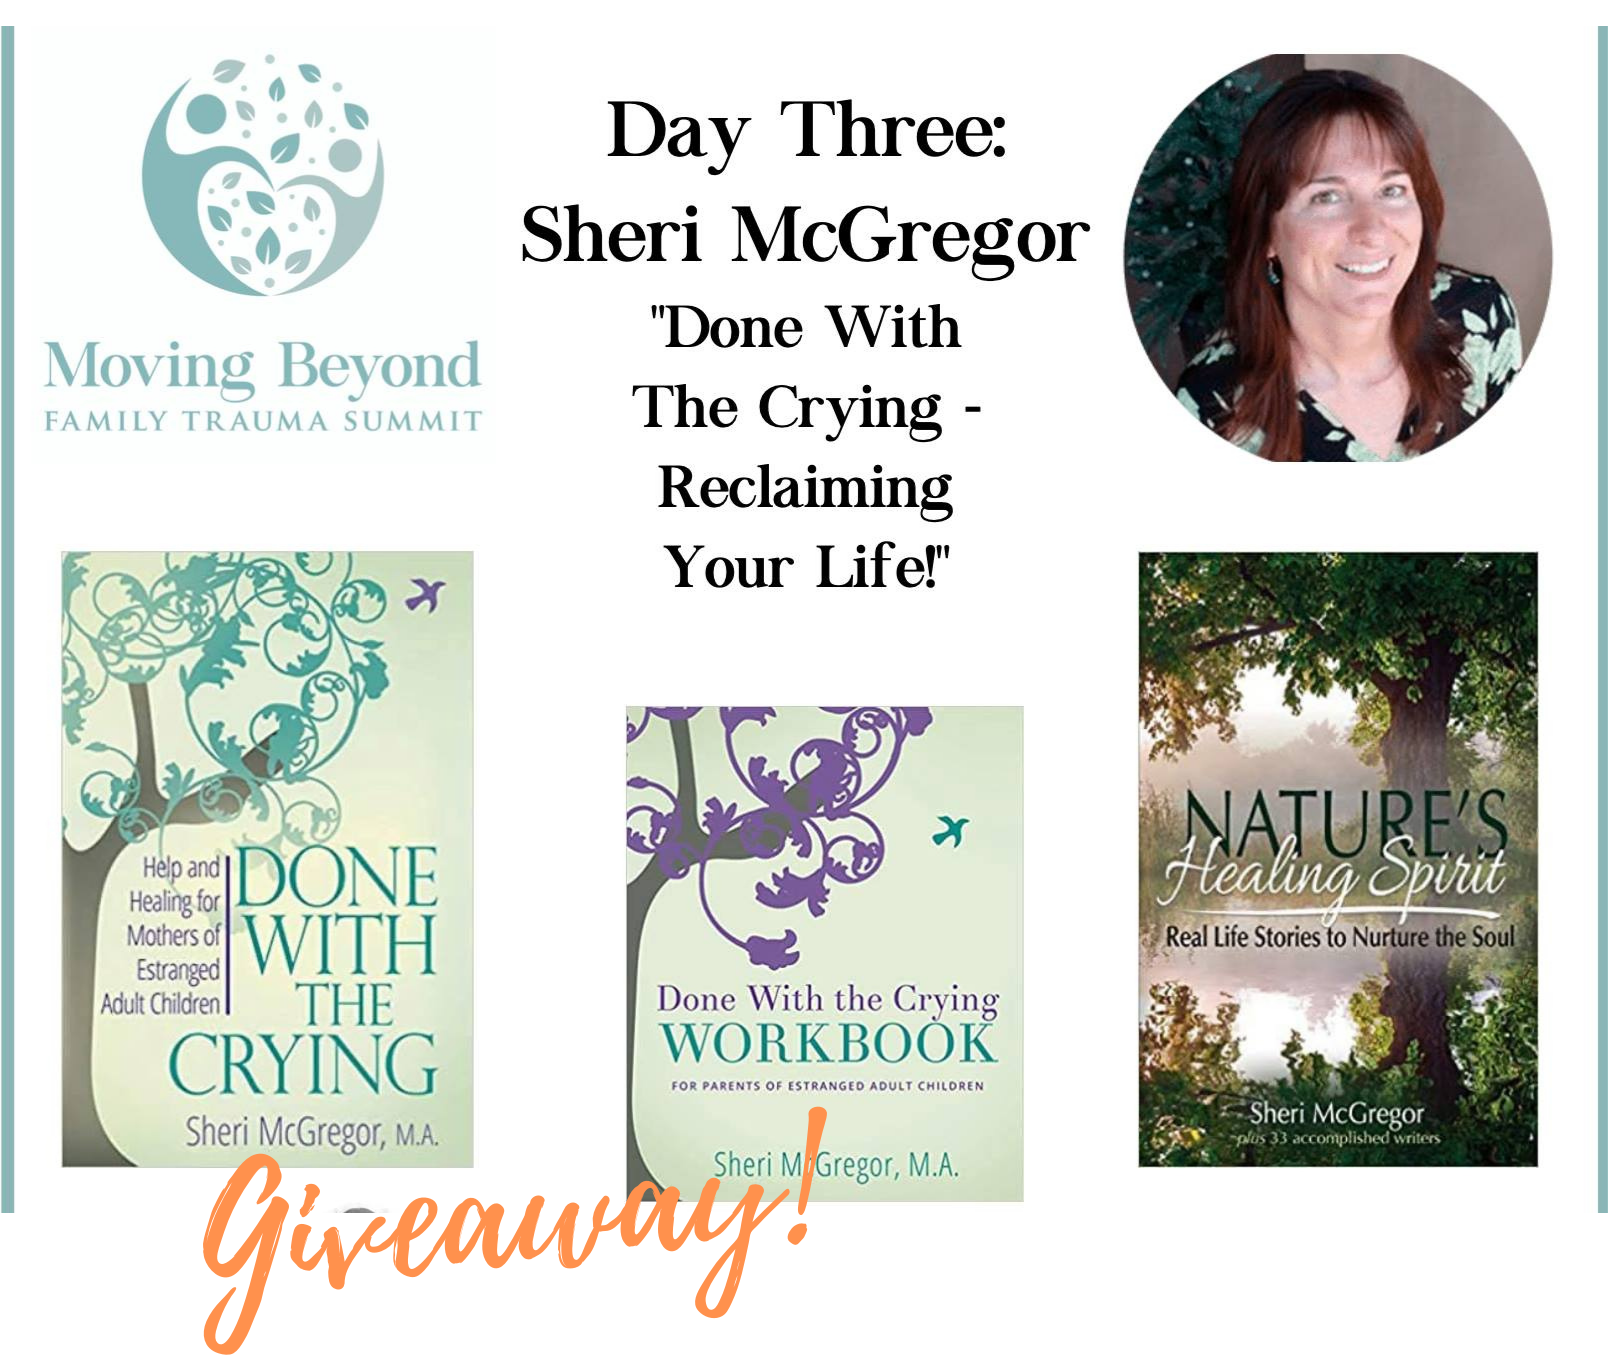 Event with Sheri McGregor